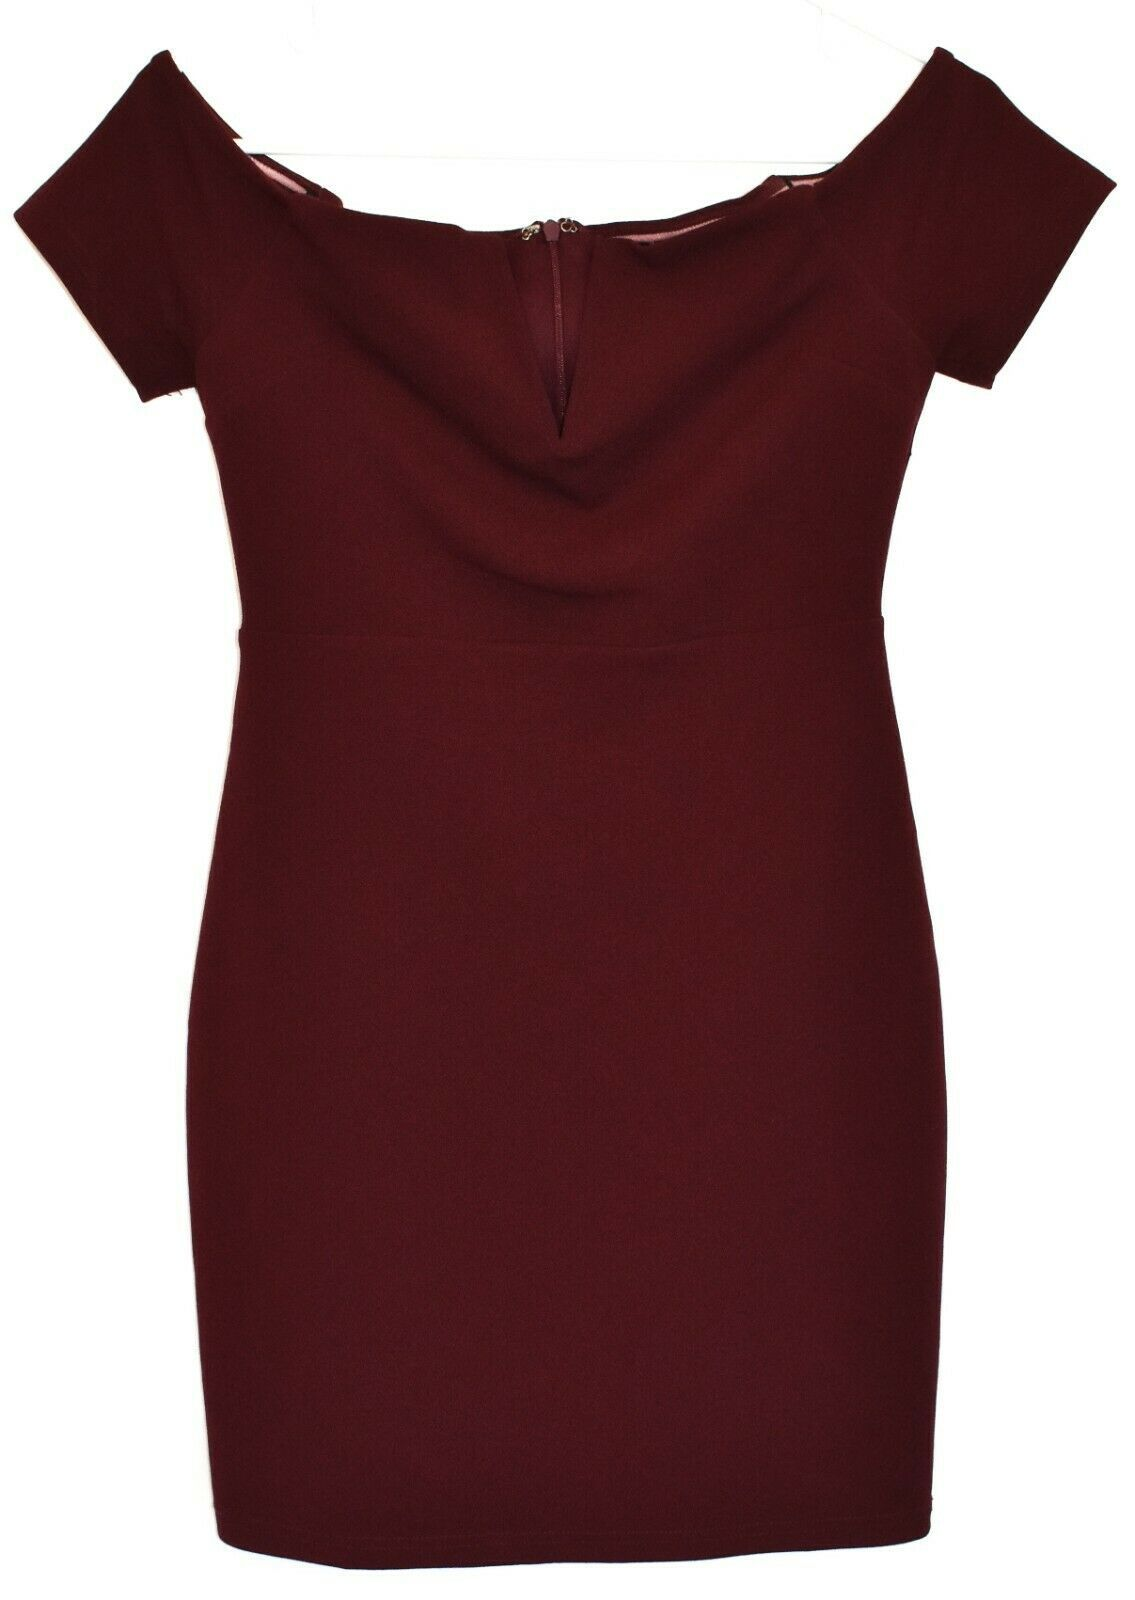 Lulus Women's Maroon Cheers to This Off-the-Shoulder Bodycon Dress Size S